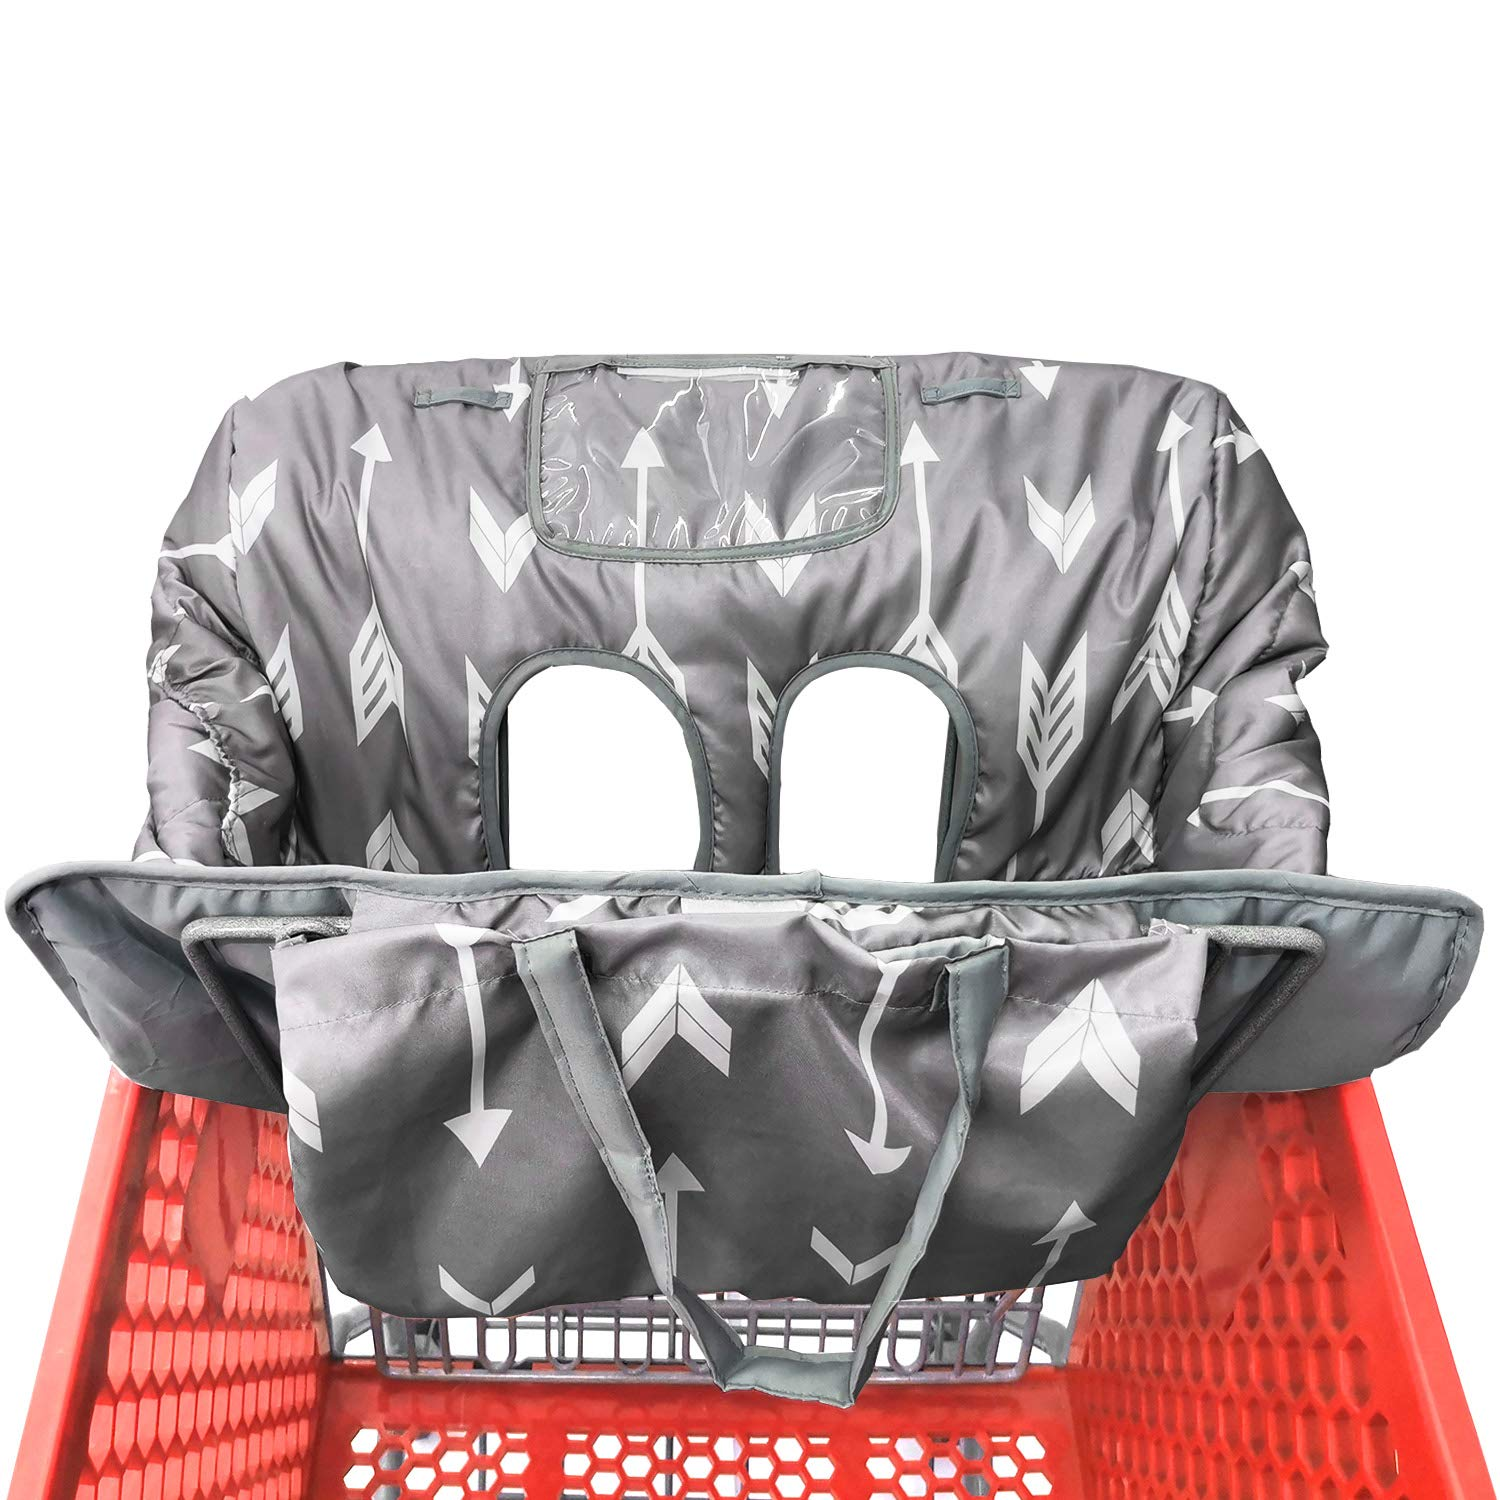 Portable Waterproof 2-in-1 Baby Shopping Cart Cover & High Chair Covers with Safety Harness for Babies & Toddler